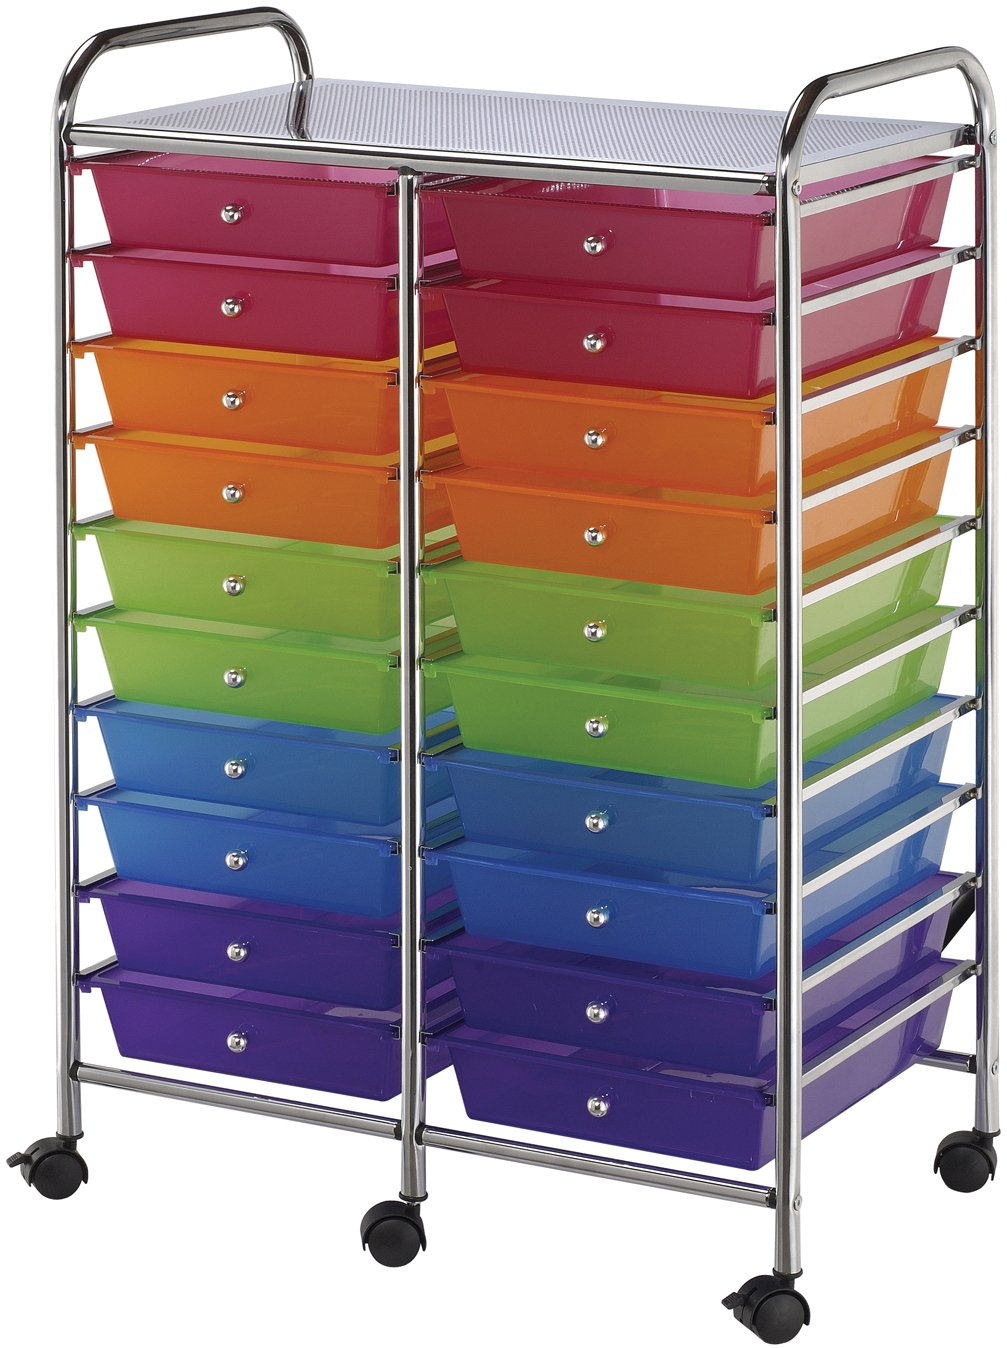 Pennylane Home Double Storage Cart with 20 Drawers, Multi-Color